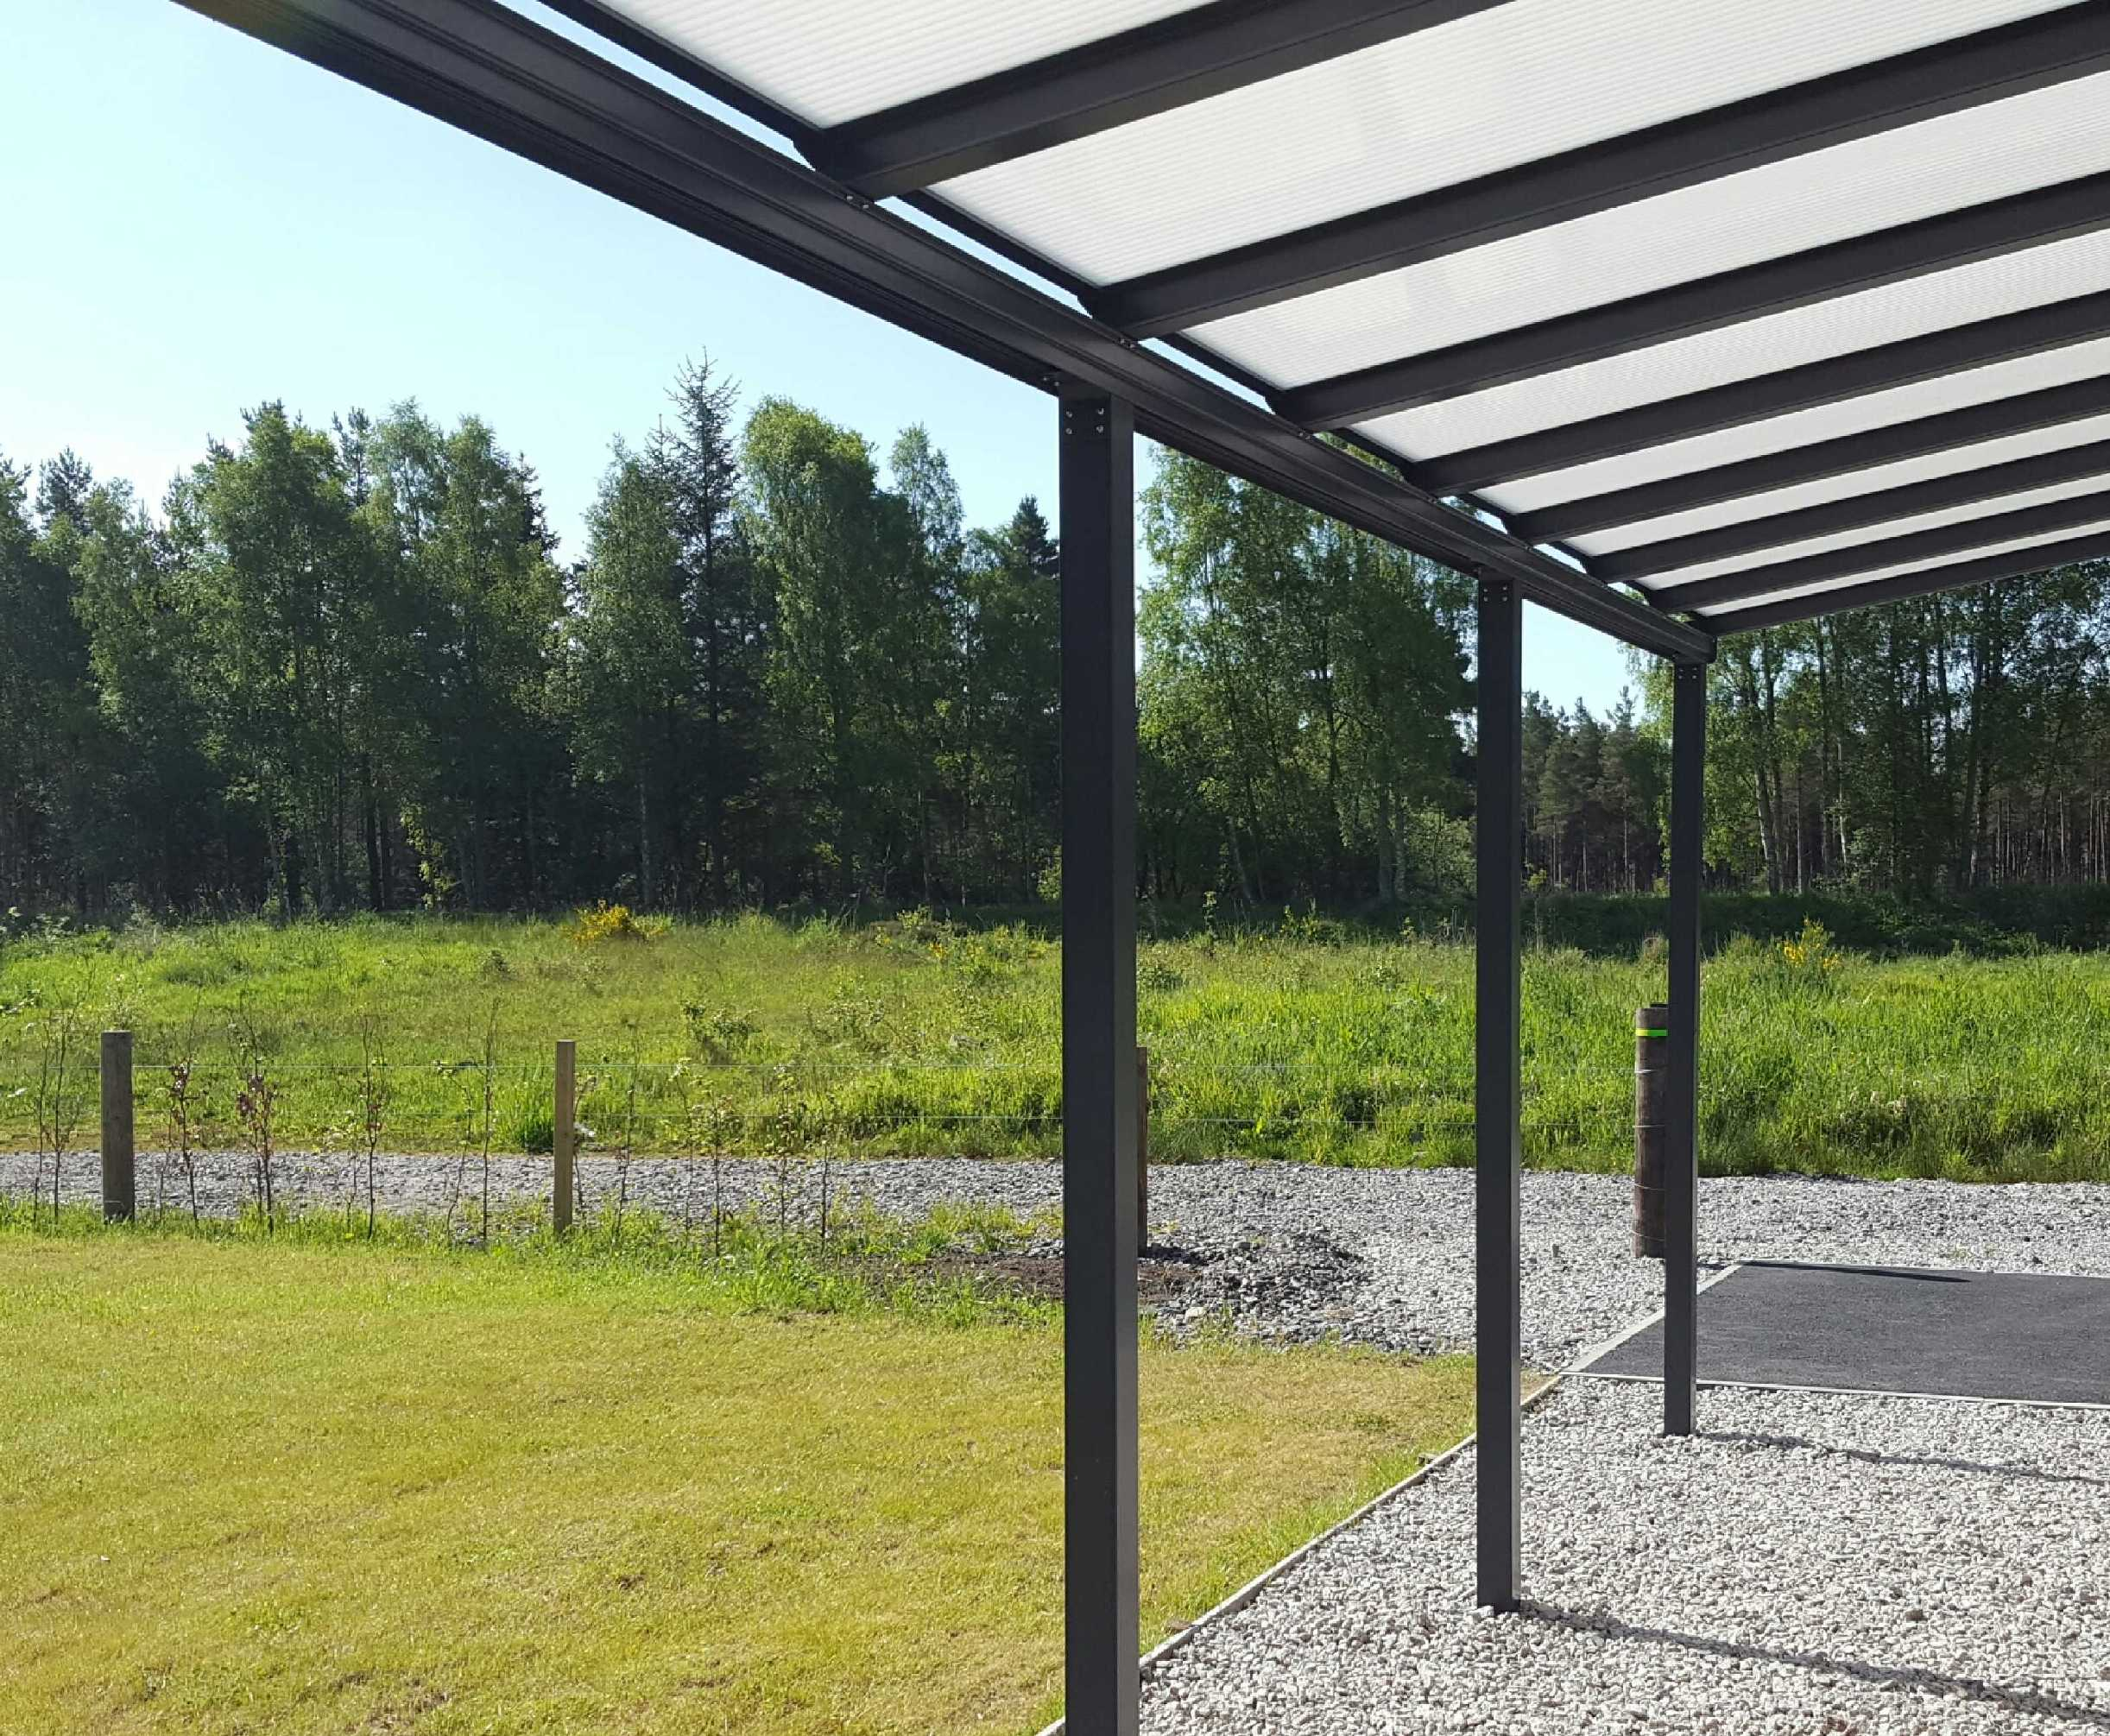 Omega Smart Lean-To Canopy, Anthracite Grey, 16mm Polycarbonate Glazing - 6.3m (W) x 4.5m (P), (4) Supporting Posts